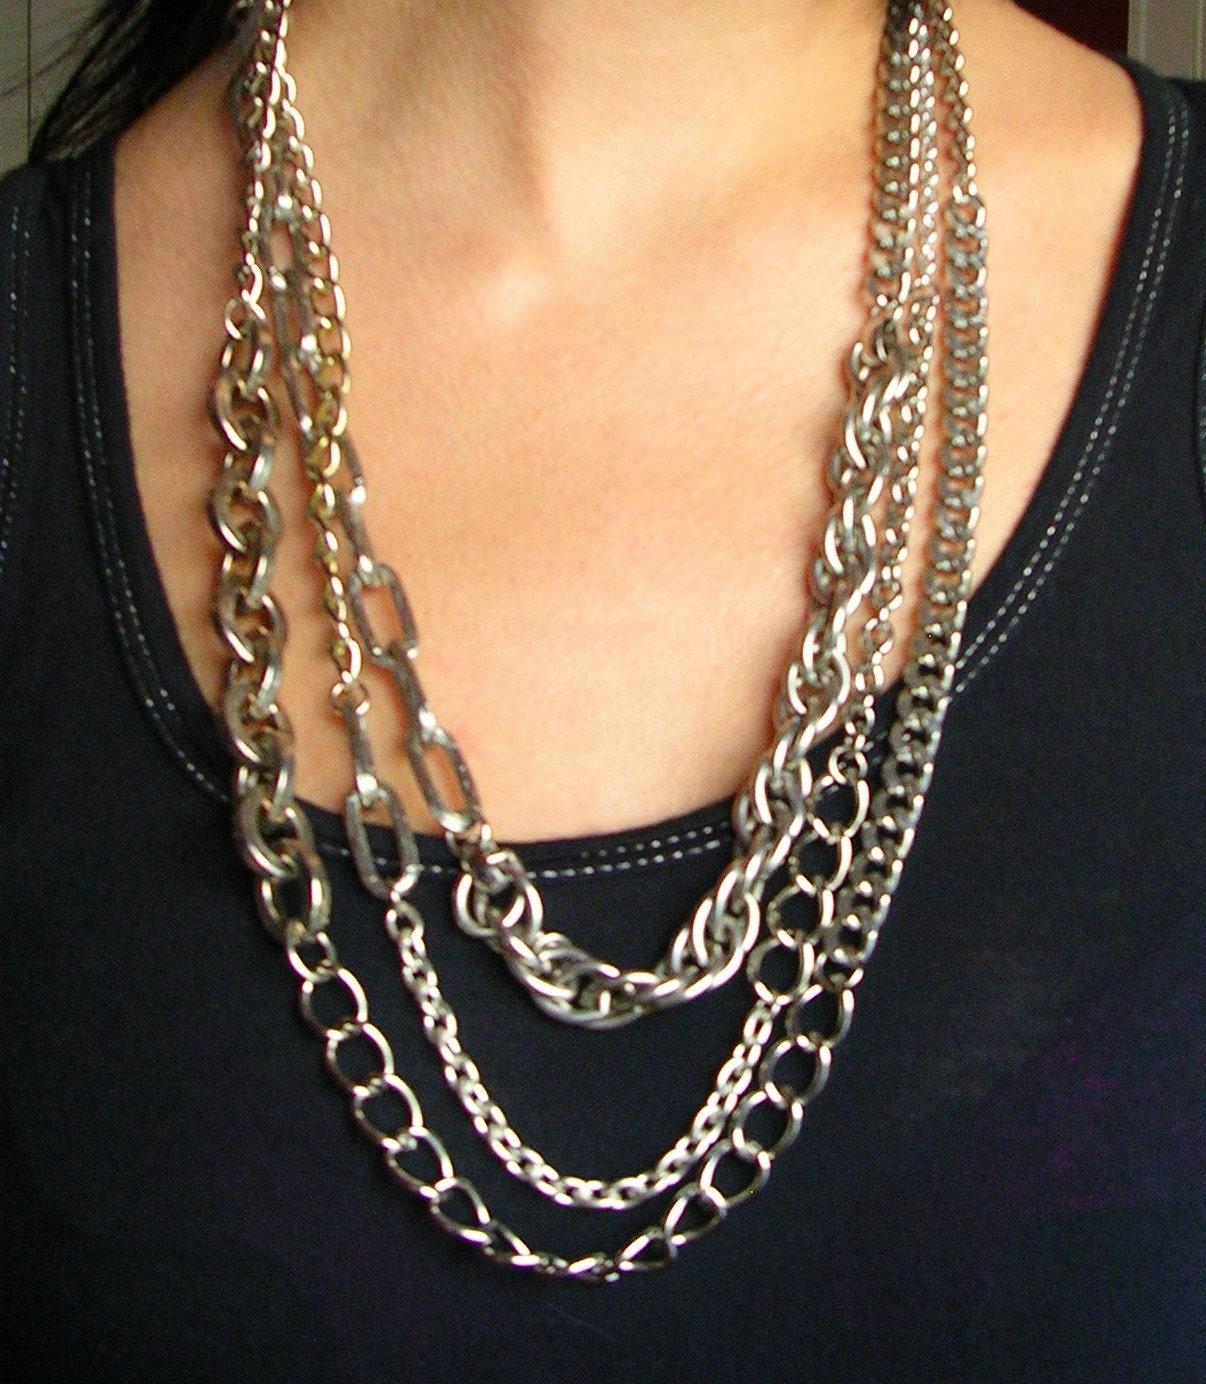 long layered chunky necklace. Black Bedroom Furniture Sets. Home Design Ideas